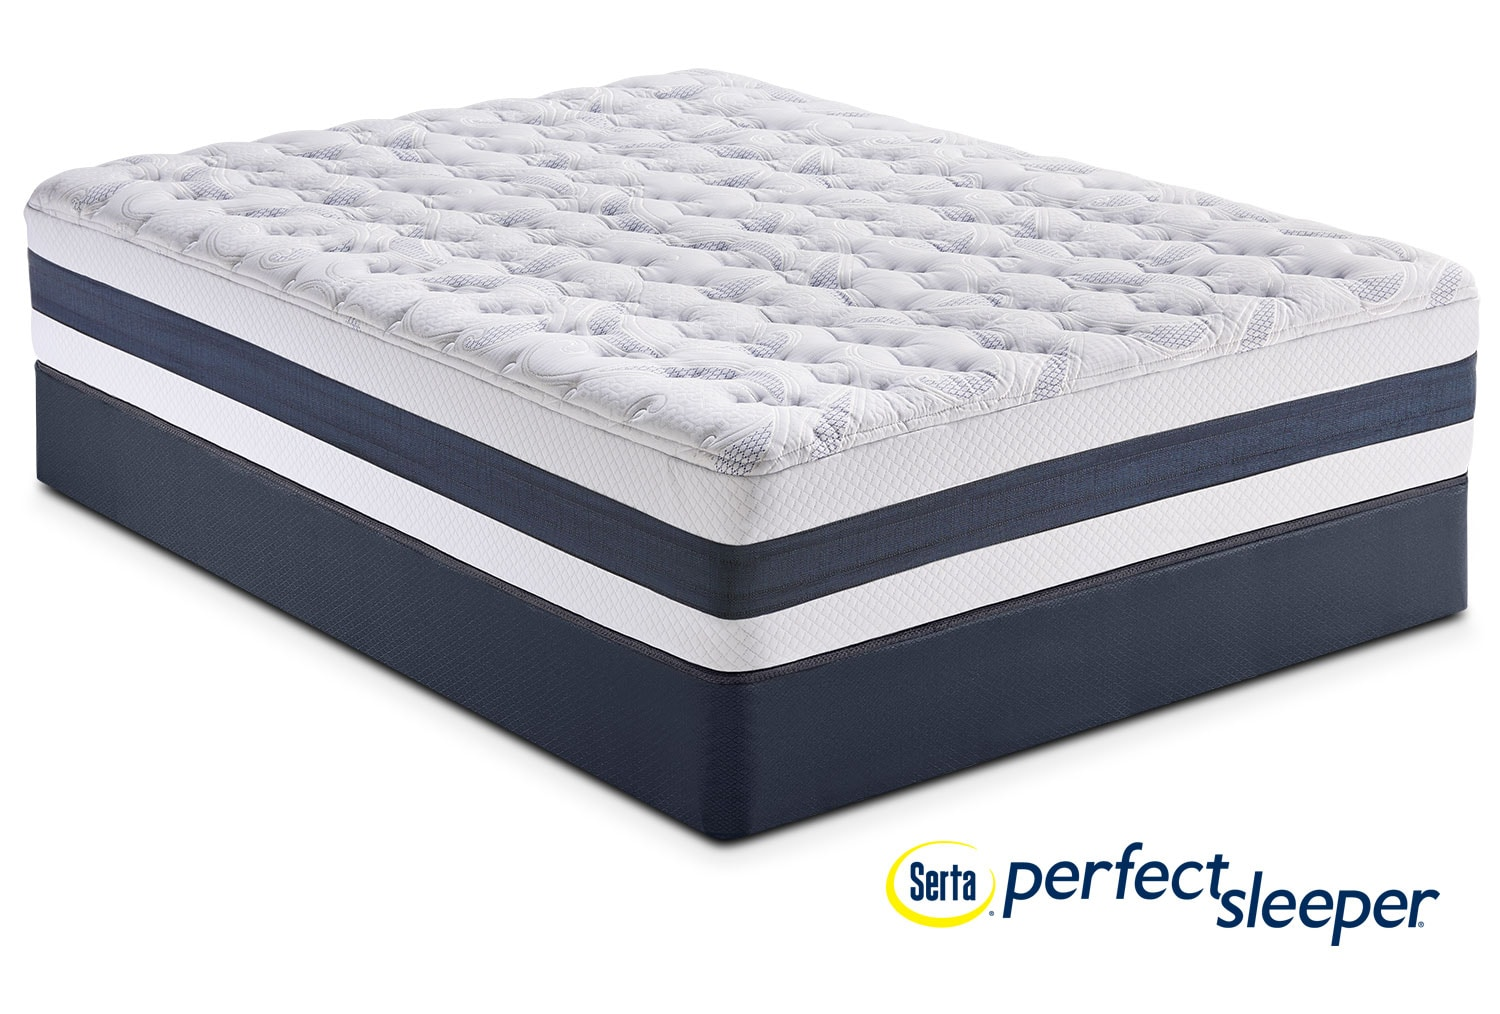 Mattresses and Bedding - Carson Ridge Queen Mattress and Low-Profile Foundation Set